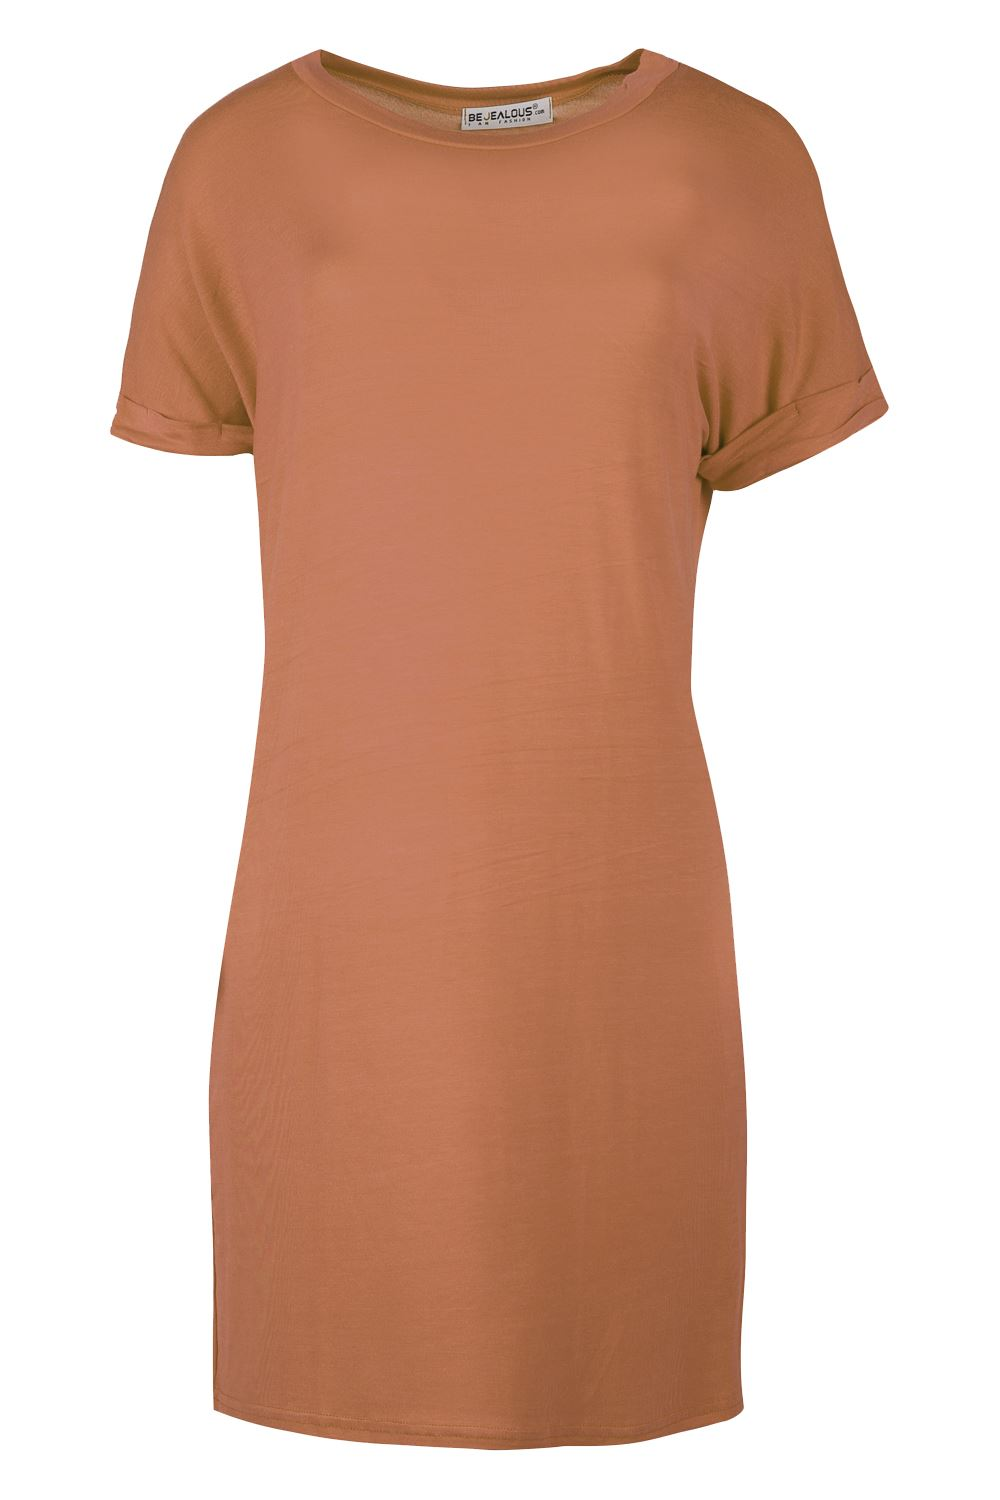 Find baggy tops for women at ShopStyle. Shop the latest collection of baggy tops for women from the most popular stores - all in one place.